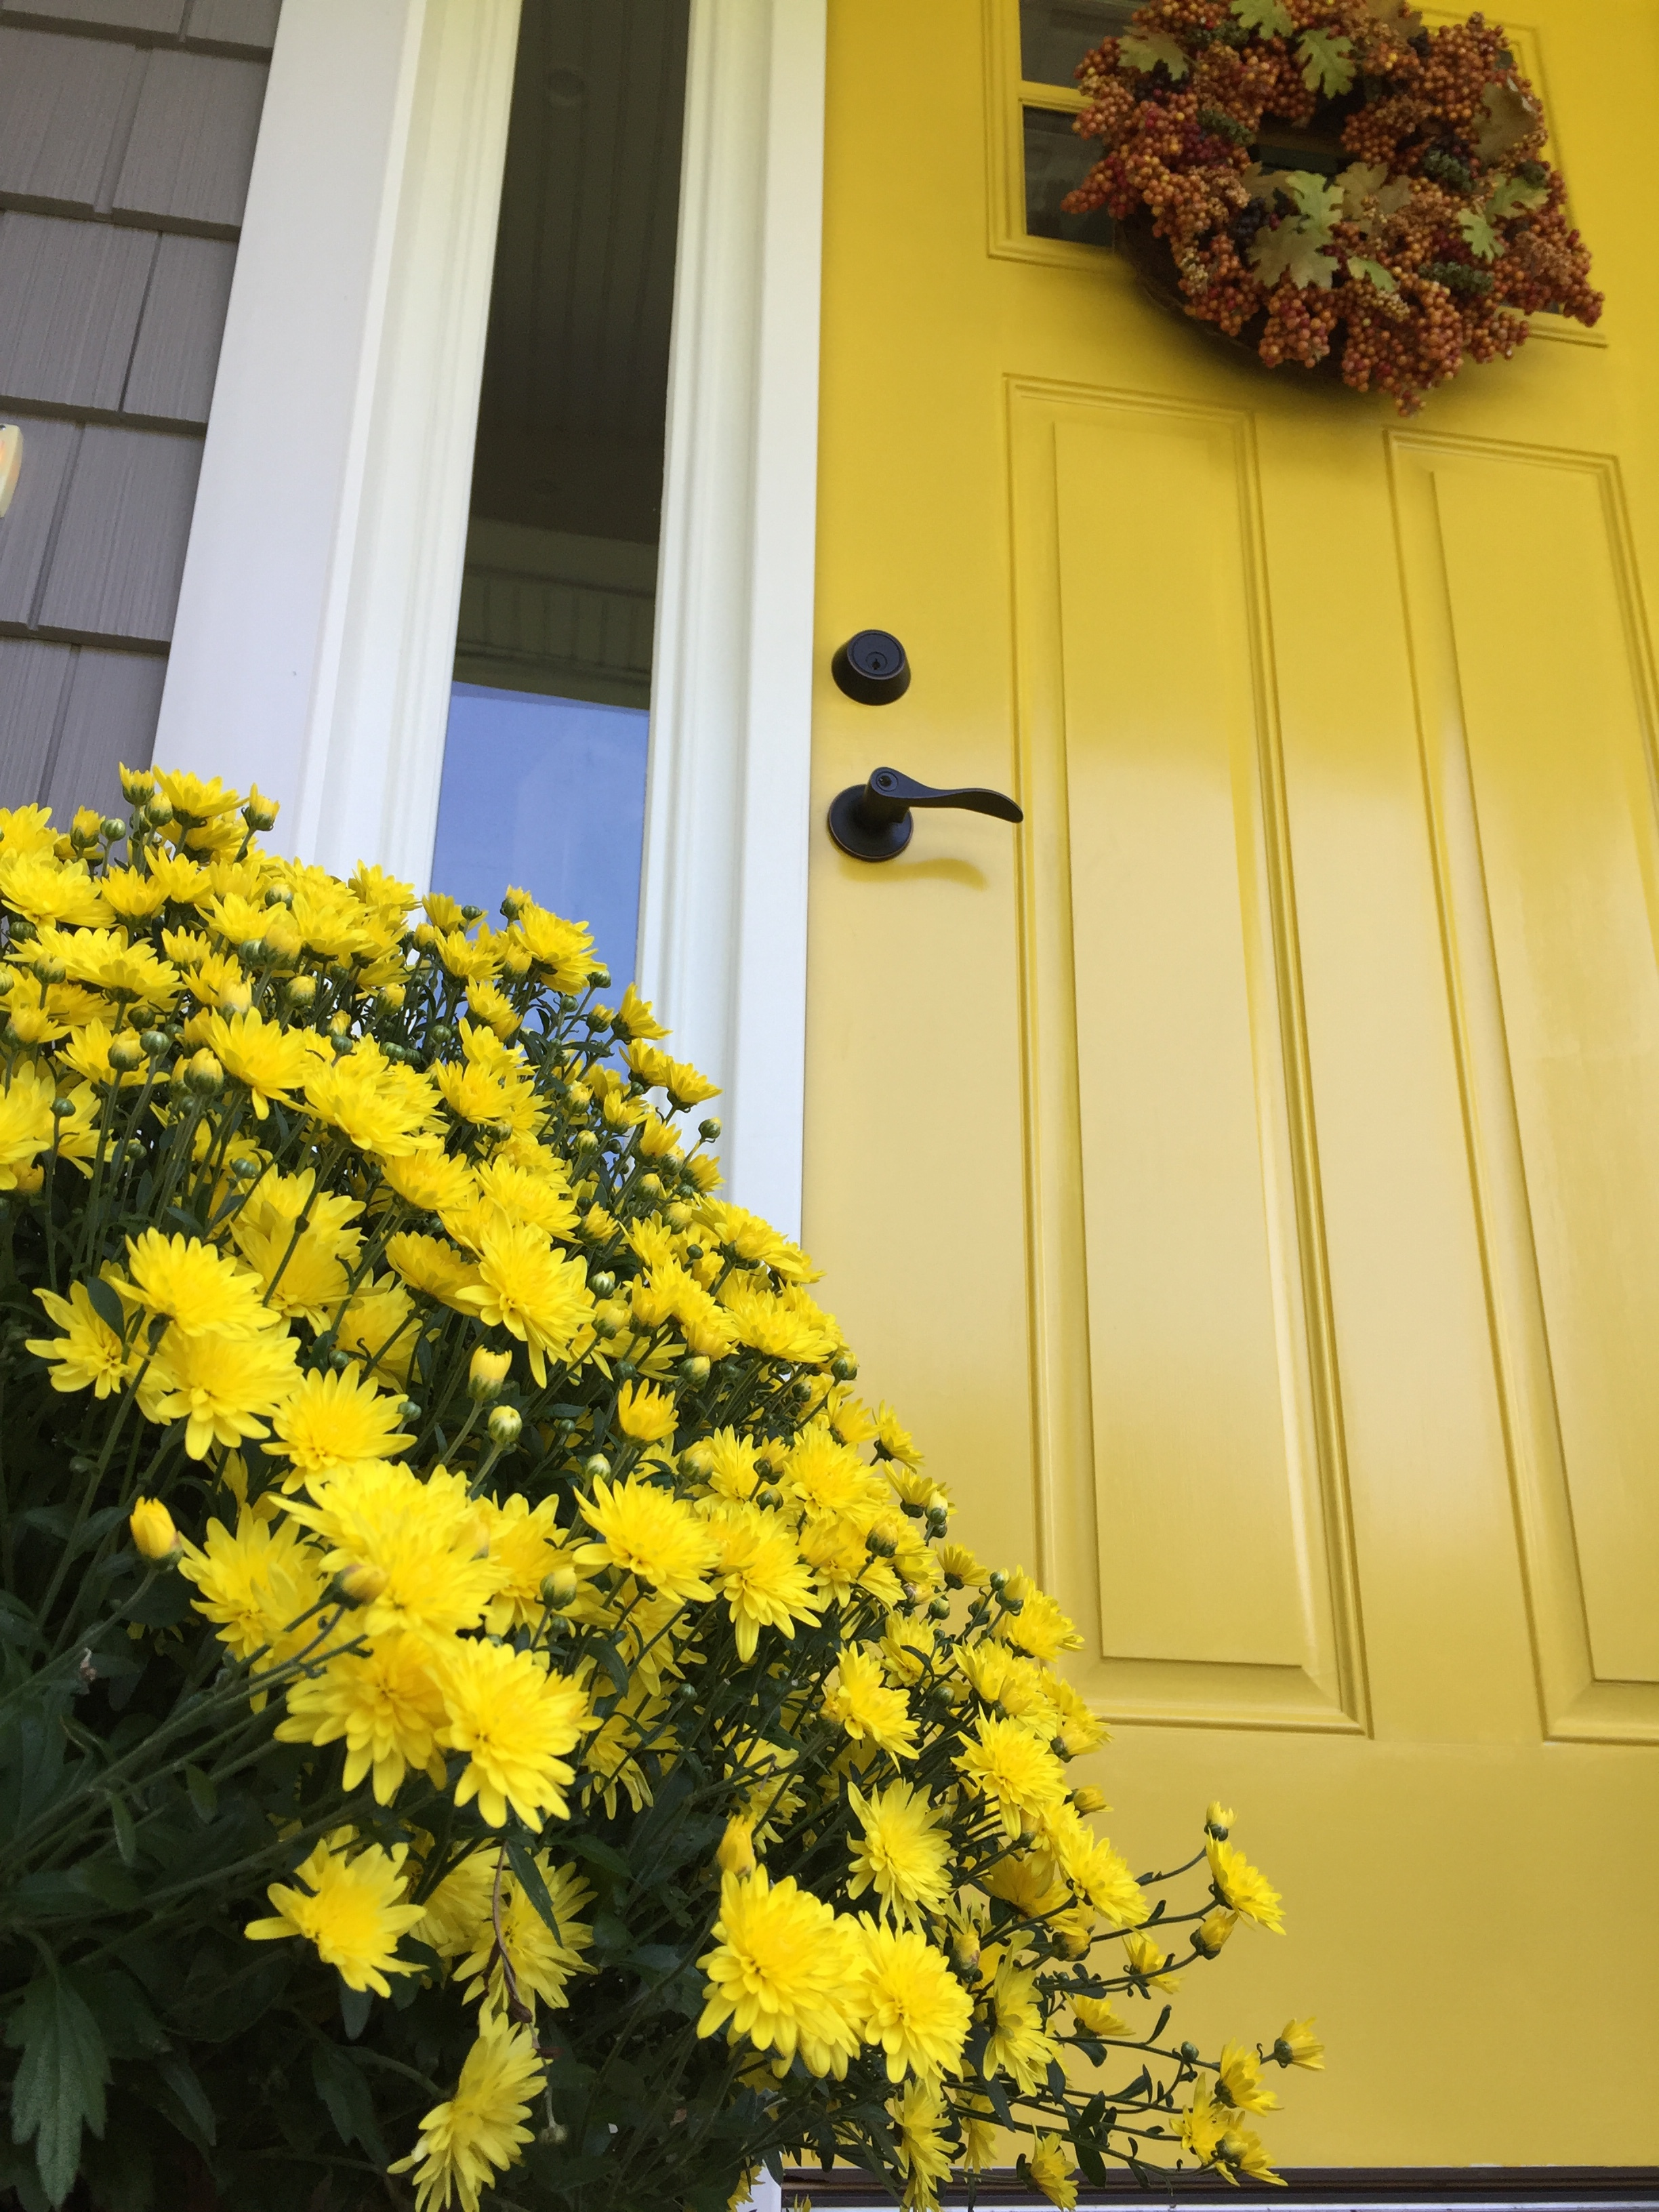 Yellow mums are blooming!